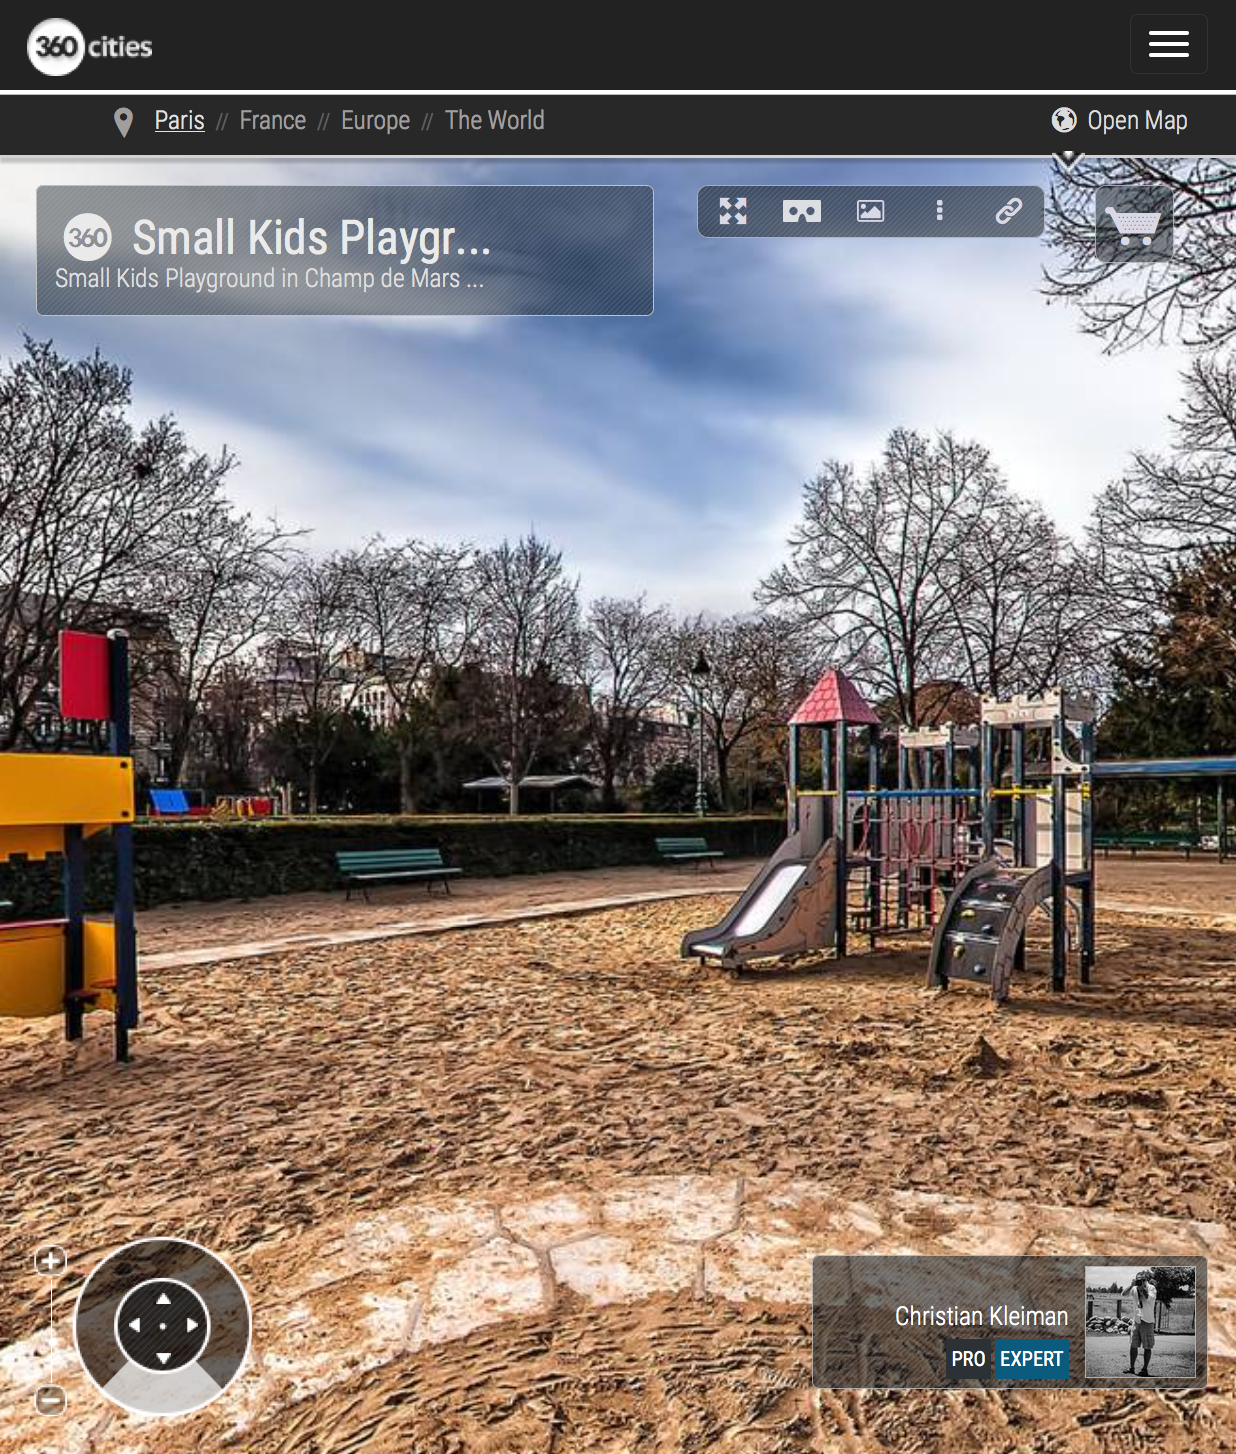 Small Kids Playground in Champ de Mars Garden - Creative 360 VR Spherical Panoramic Photography from emblematic places in Paris by © Christian Kleiman